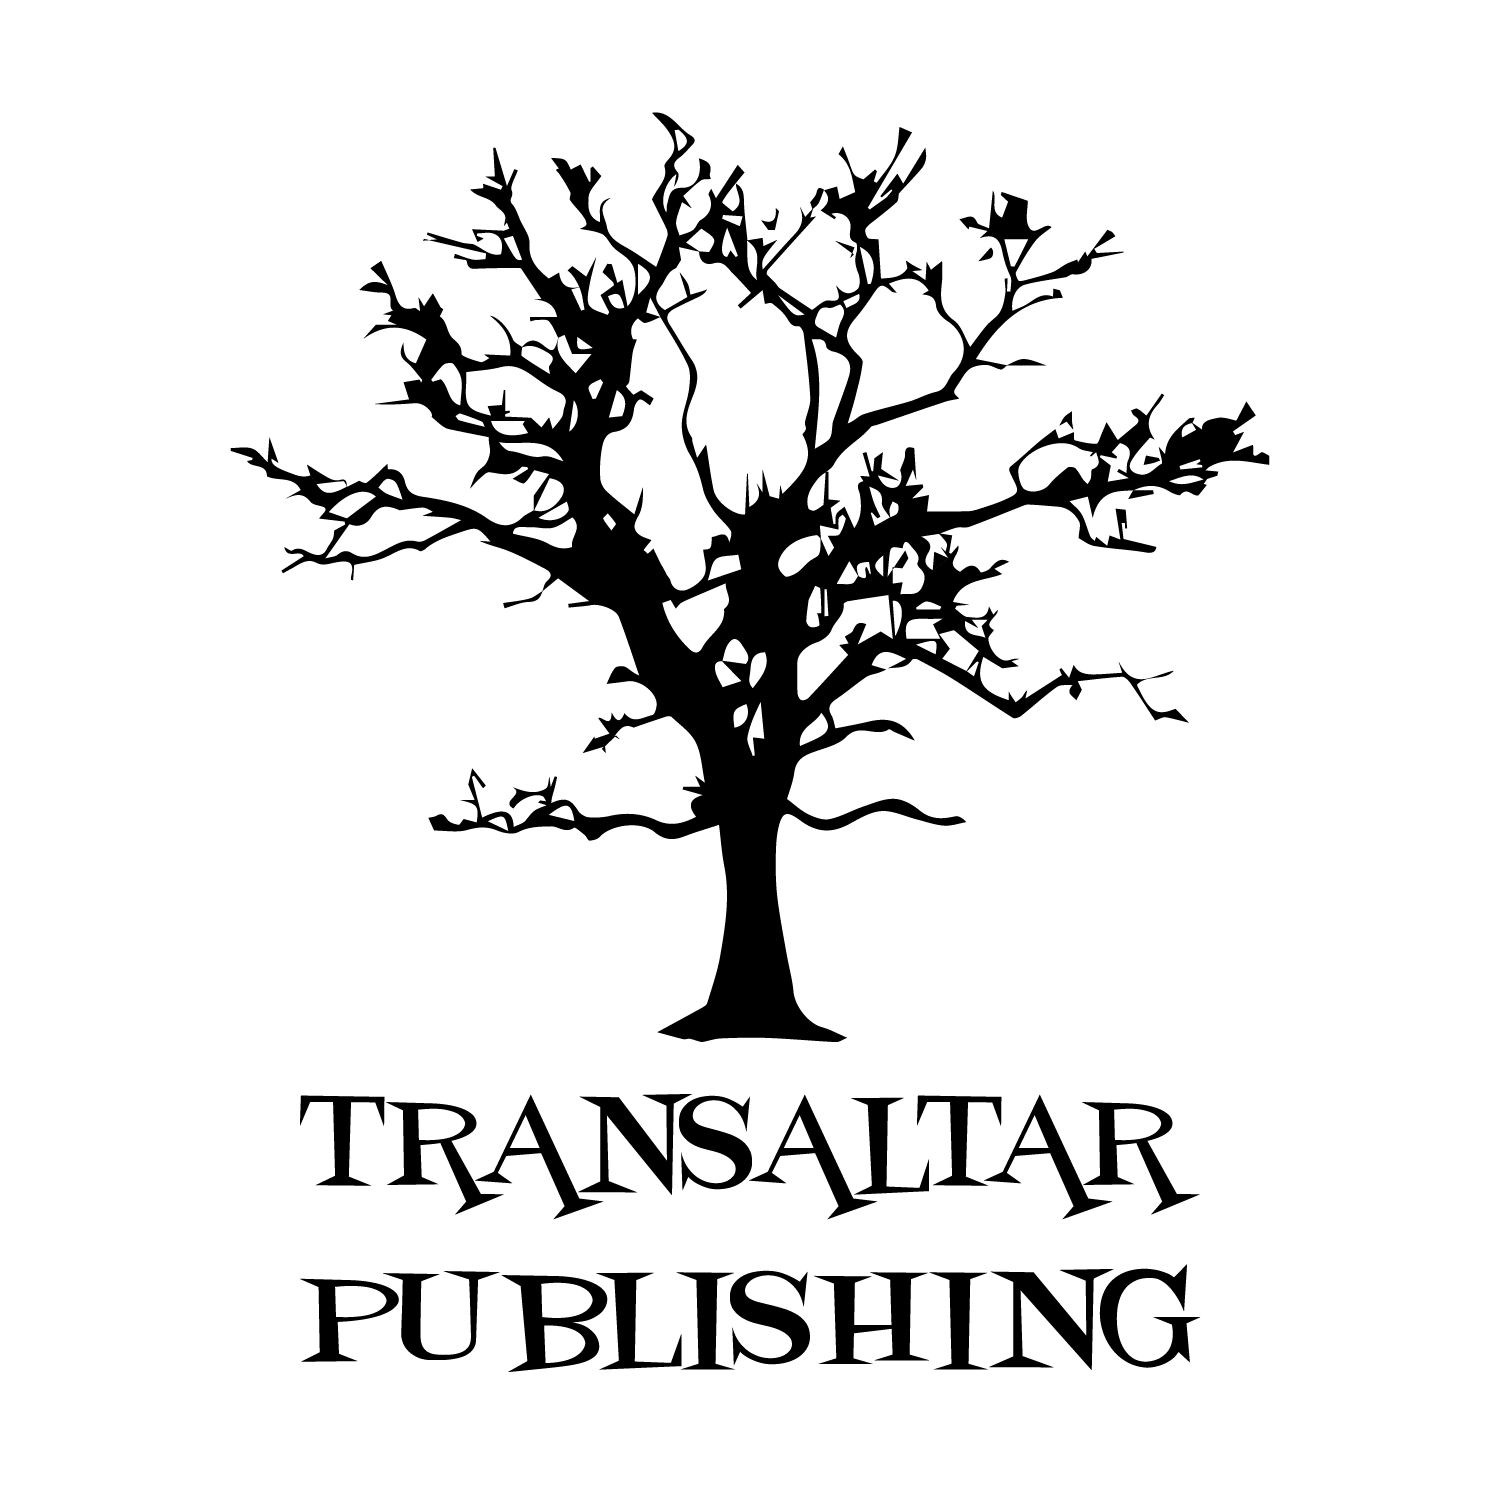 Transaltar Publishing_full_transp_highres-03